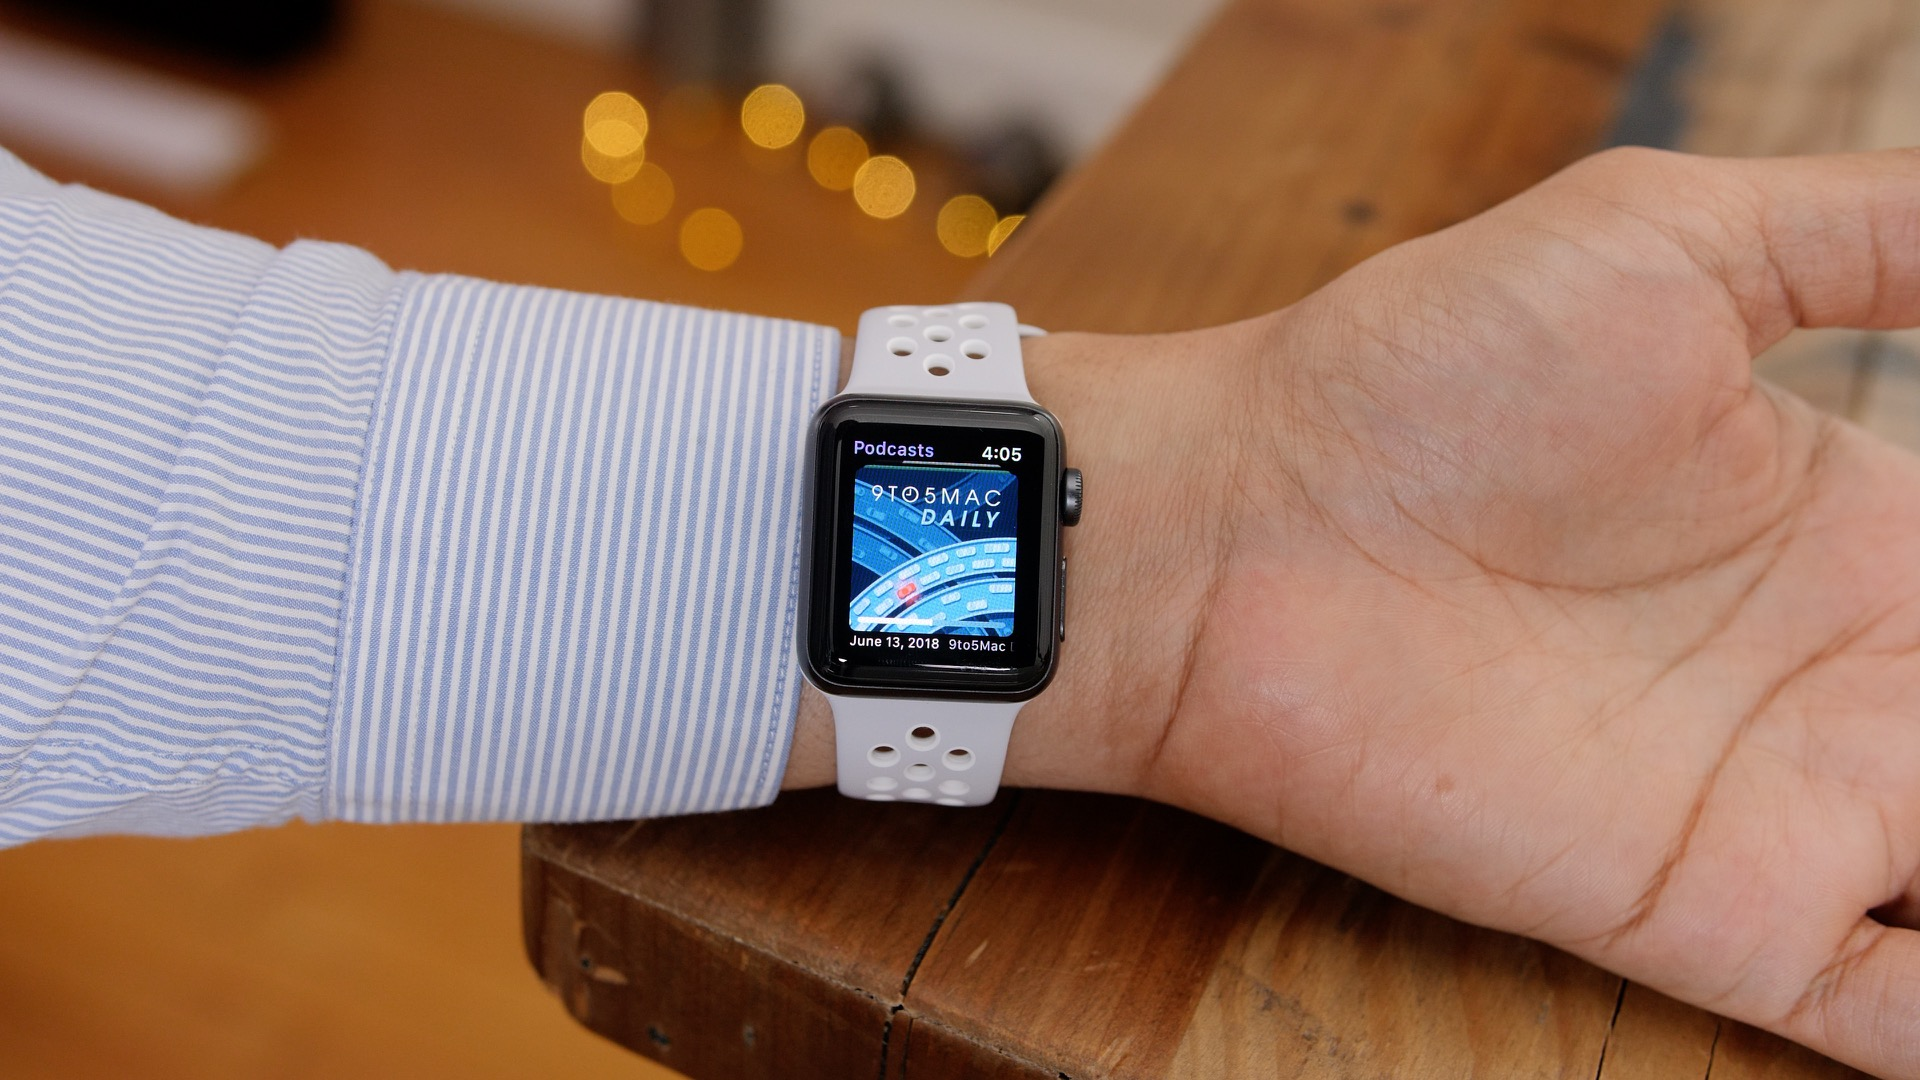 watchOS 5: Features, News, Rumors, and more - 9to5Mac